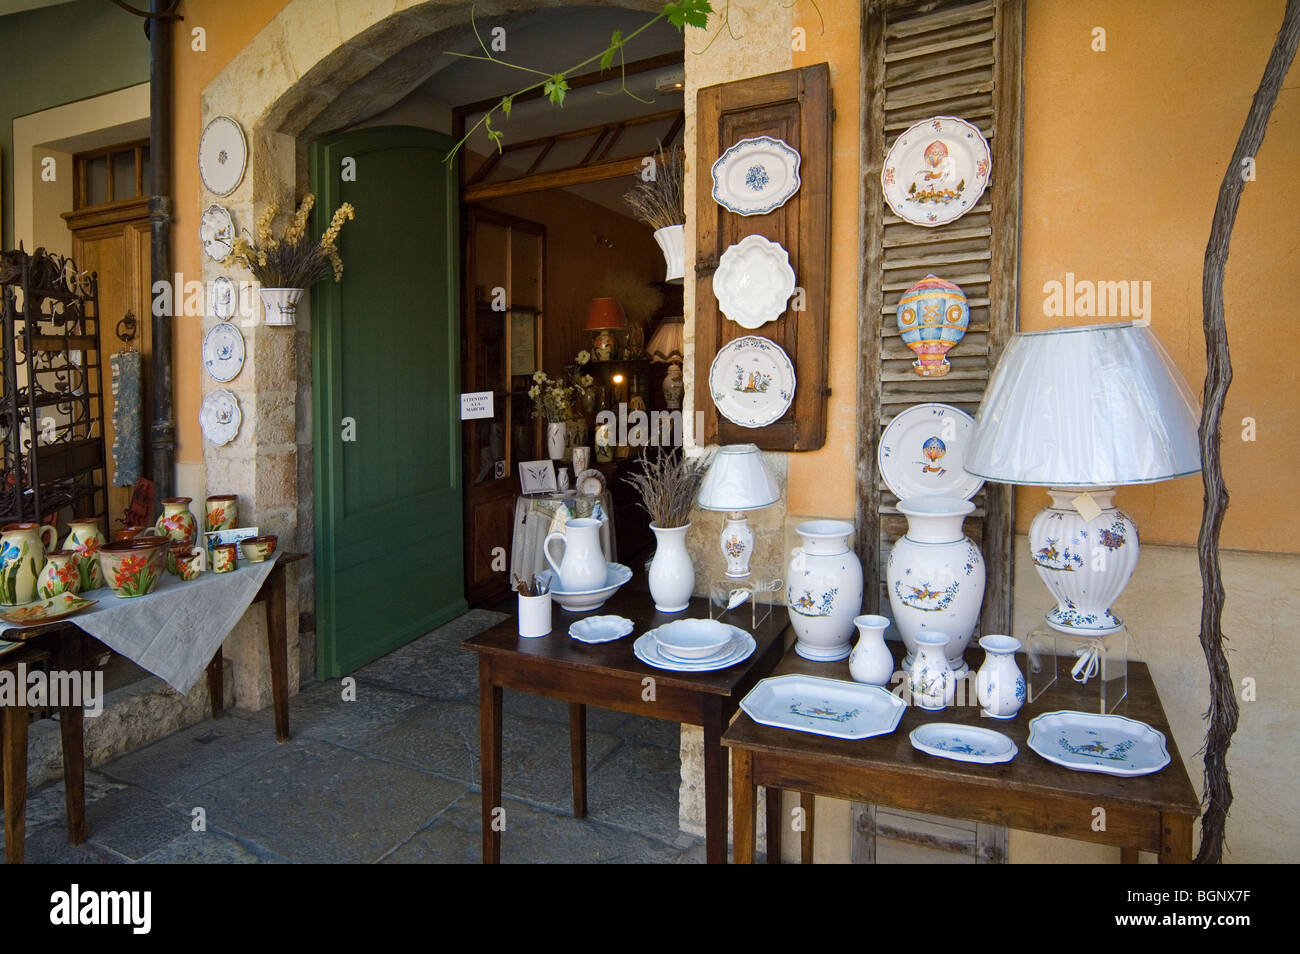 souvenir shop with faience pottery at moustiers sainte marie stock photo royalty free image. Black Bedroom Furniture Sets. Home Design Ideas